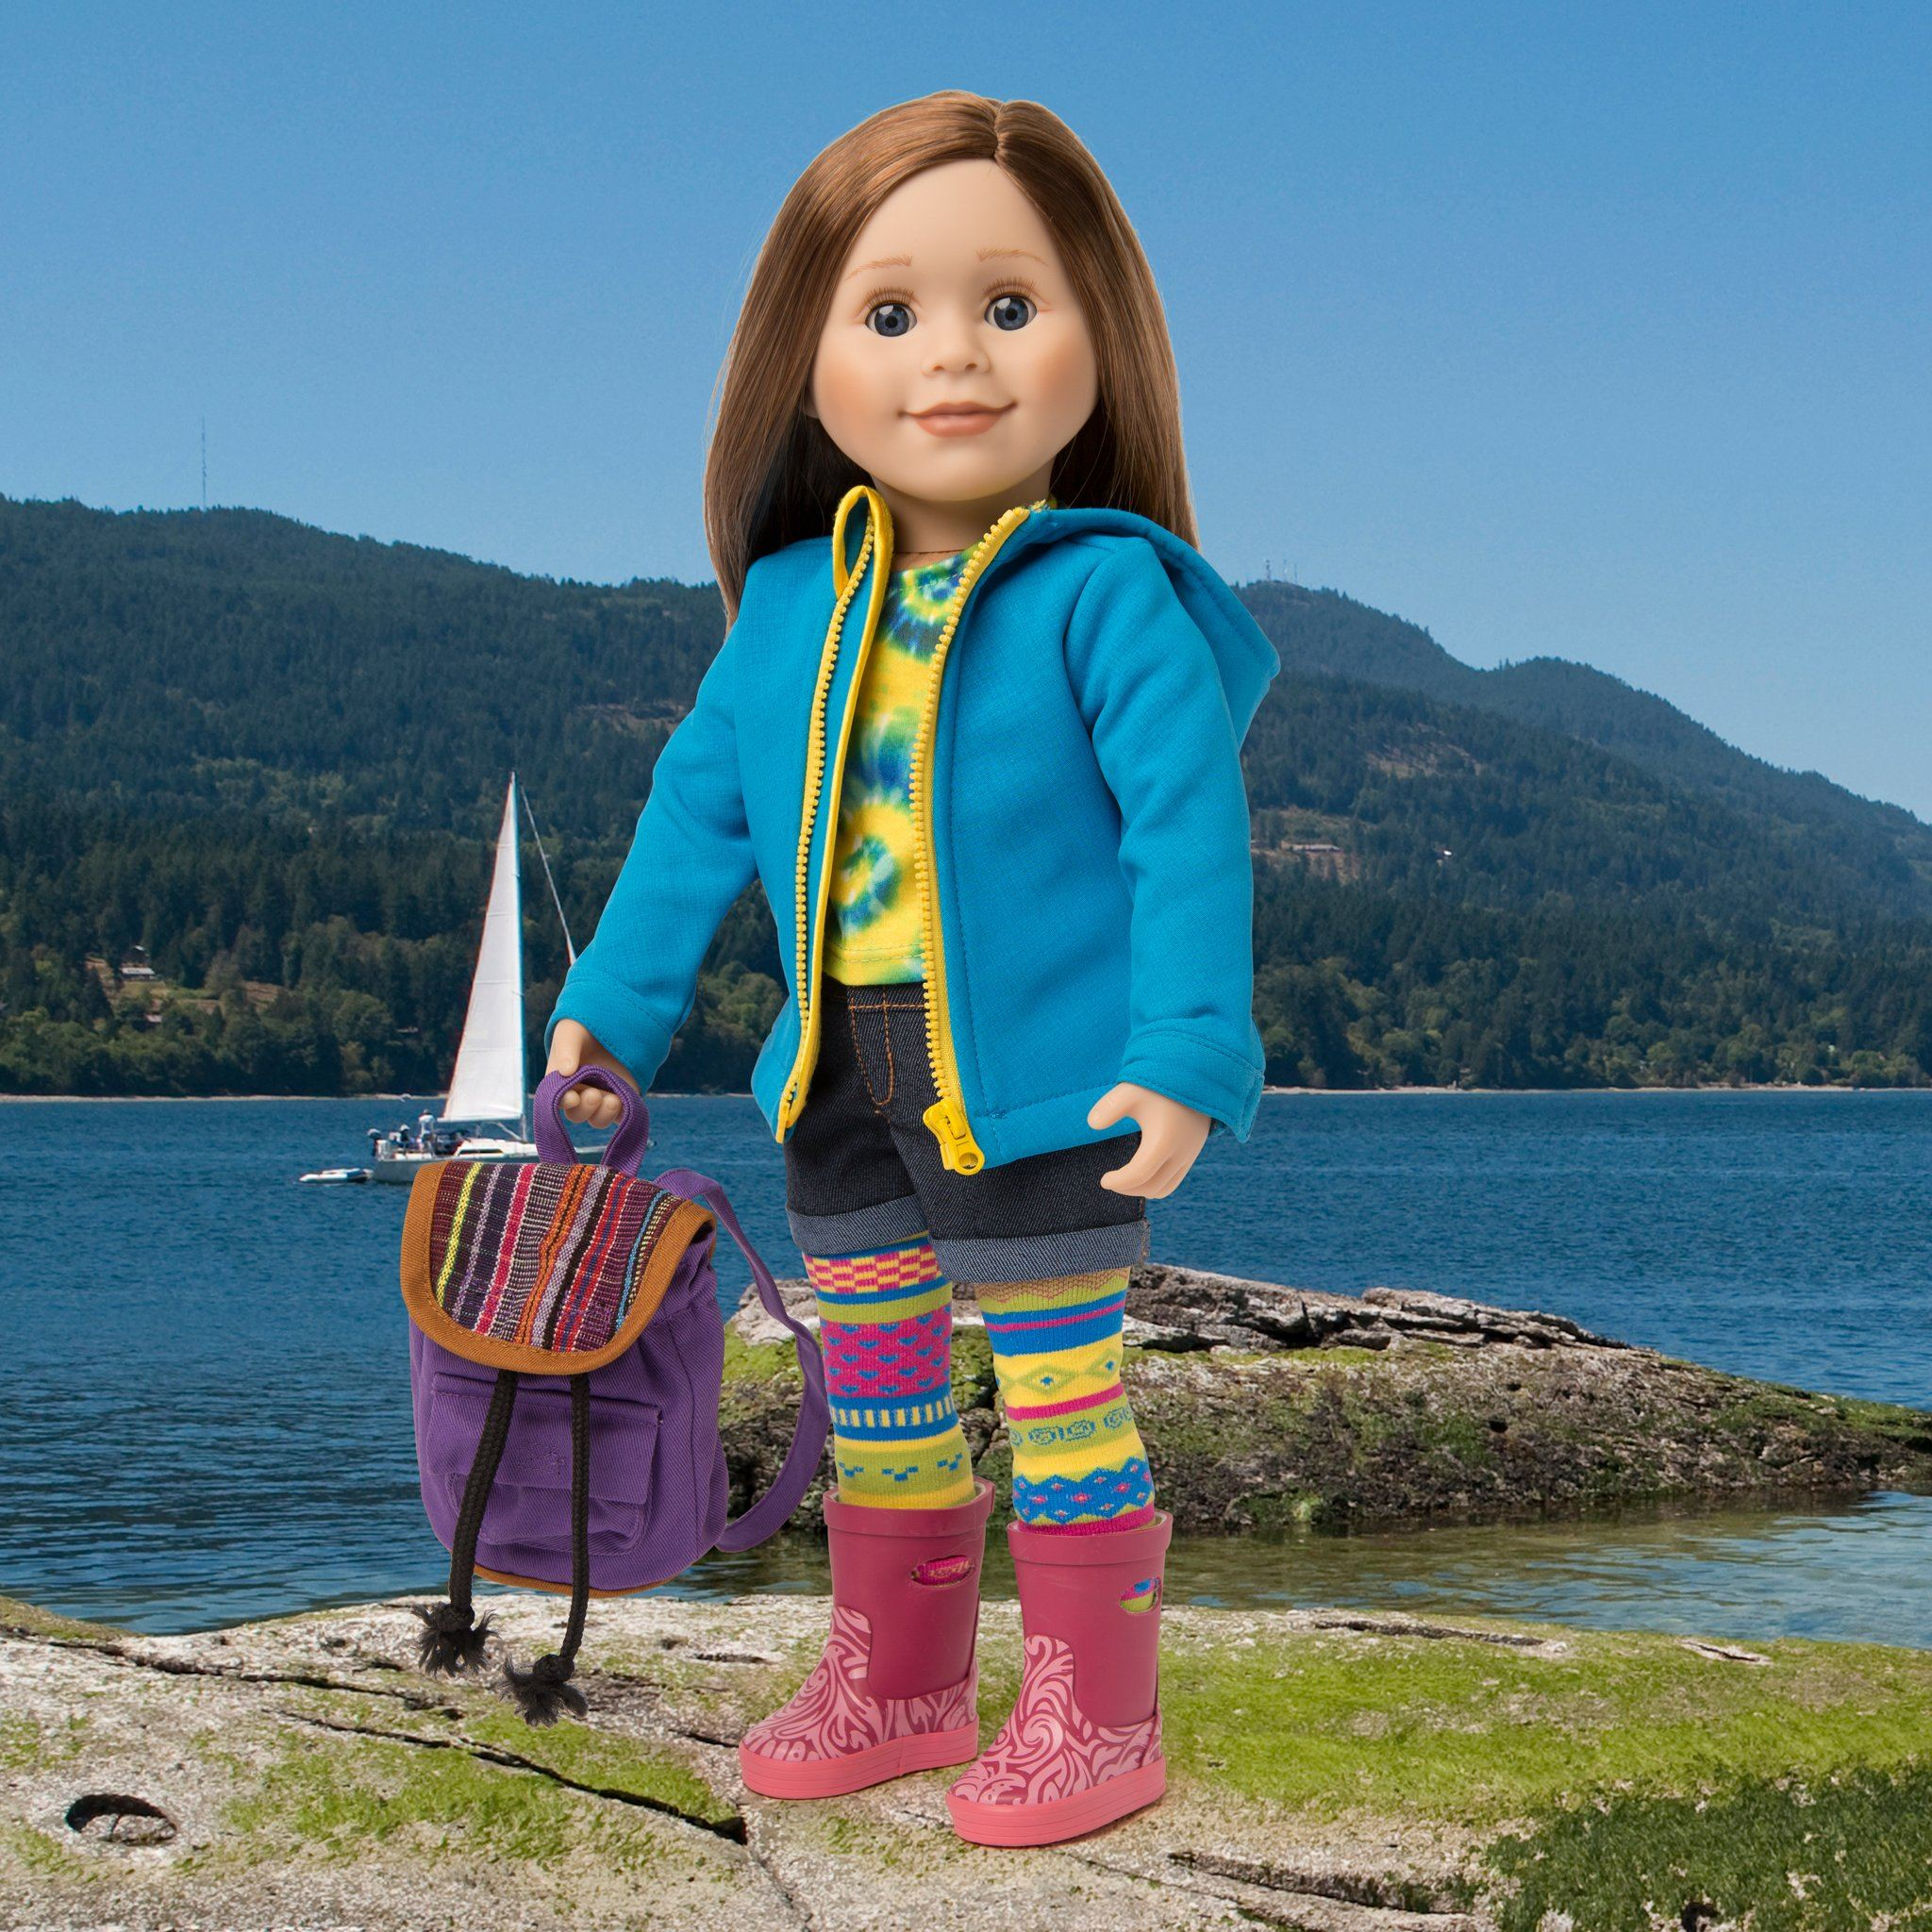 Rain jacket and backpack worn by 18 inch doll in British Columbia Canada.